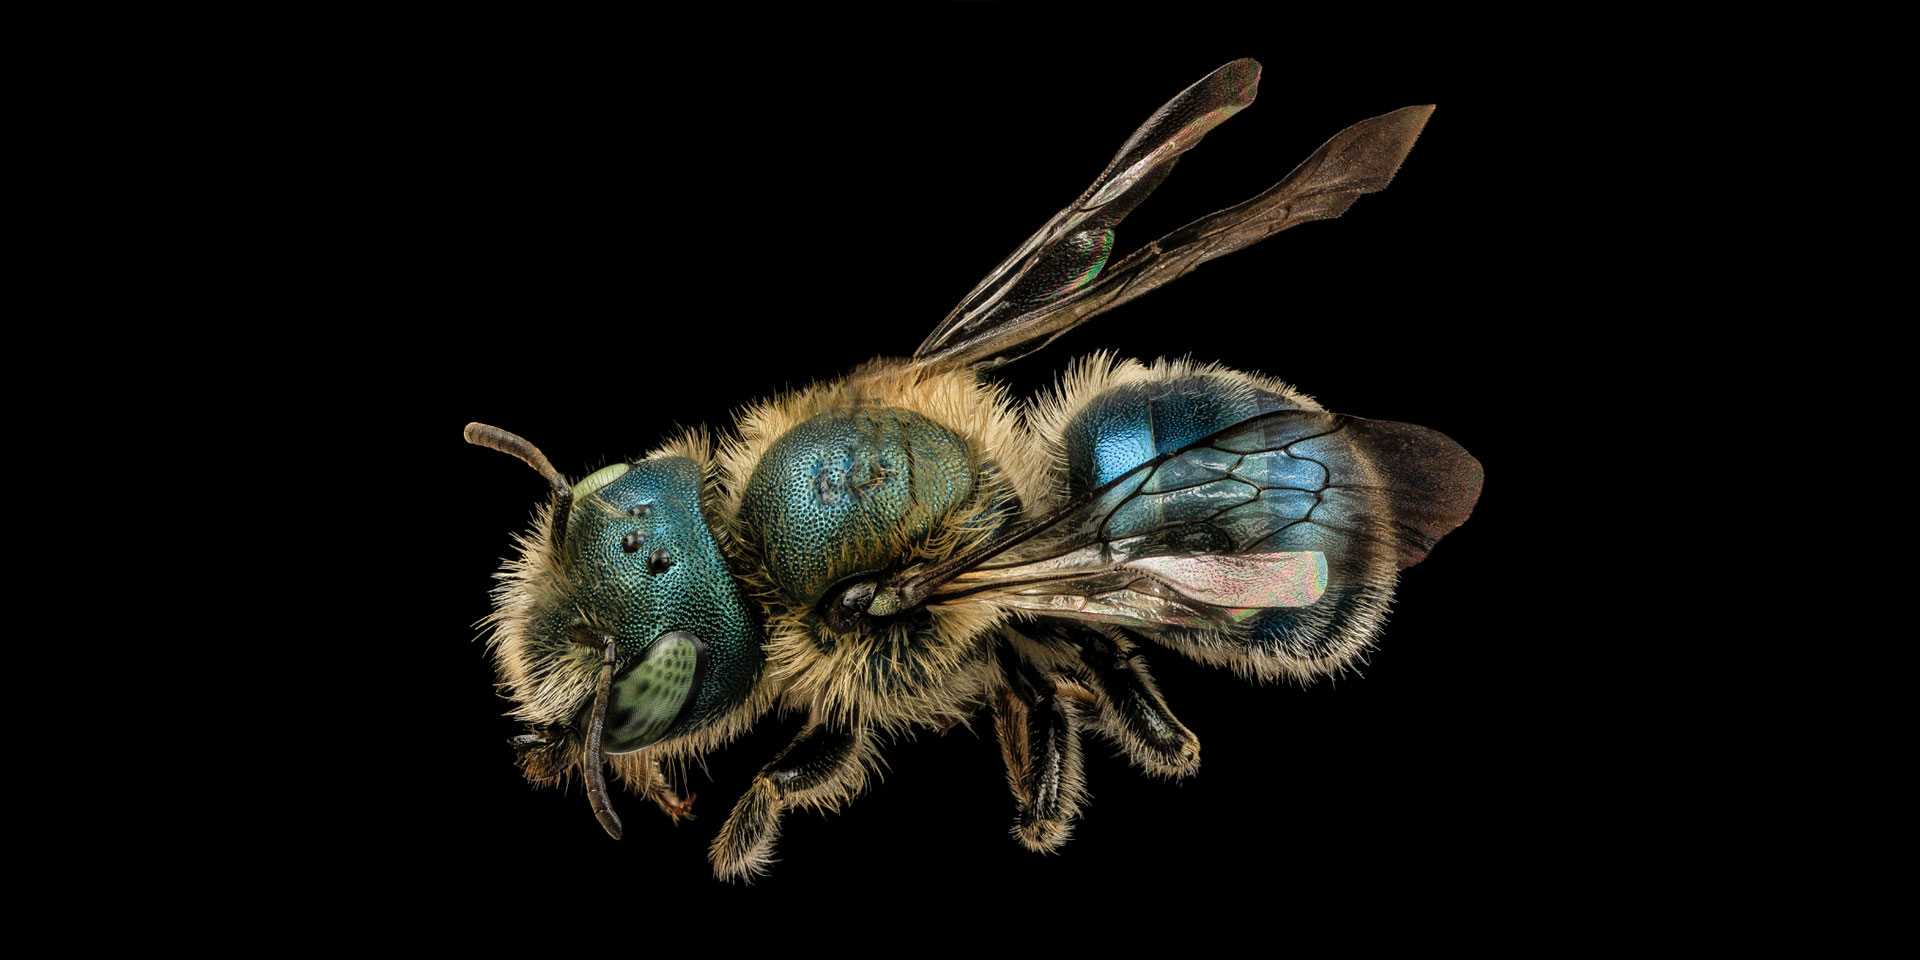 Osmia atriventris (Maine Blueberry Bee) - One of the more than 276 bees native to Maine!